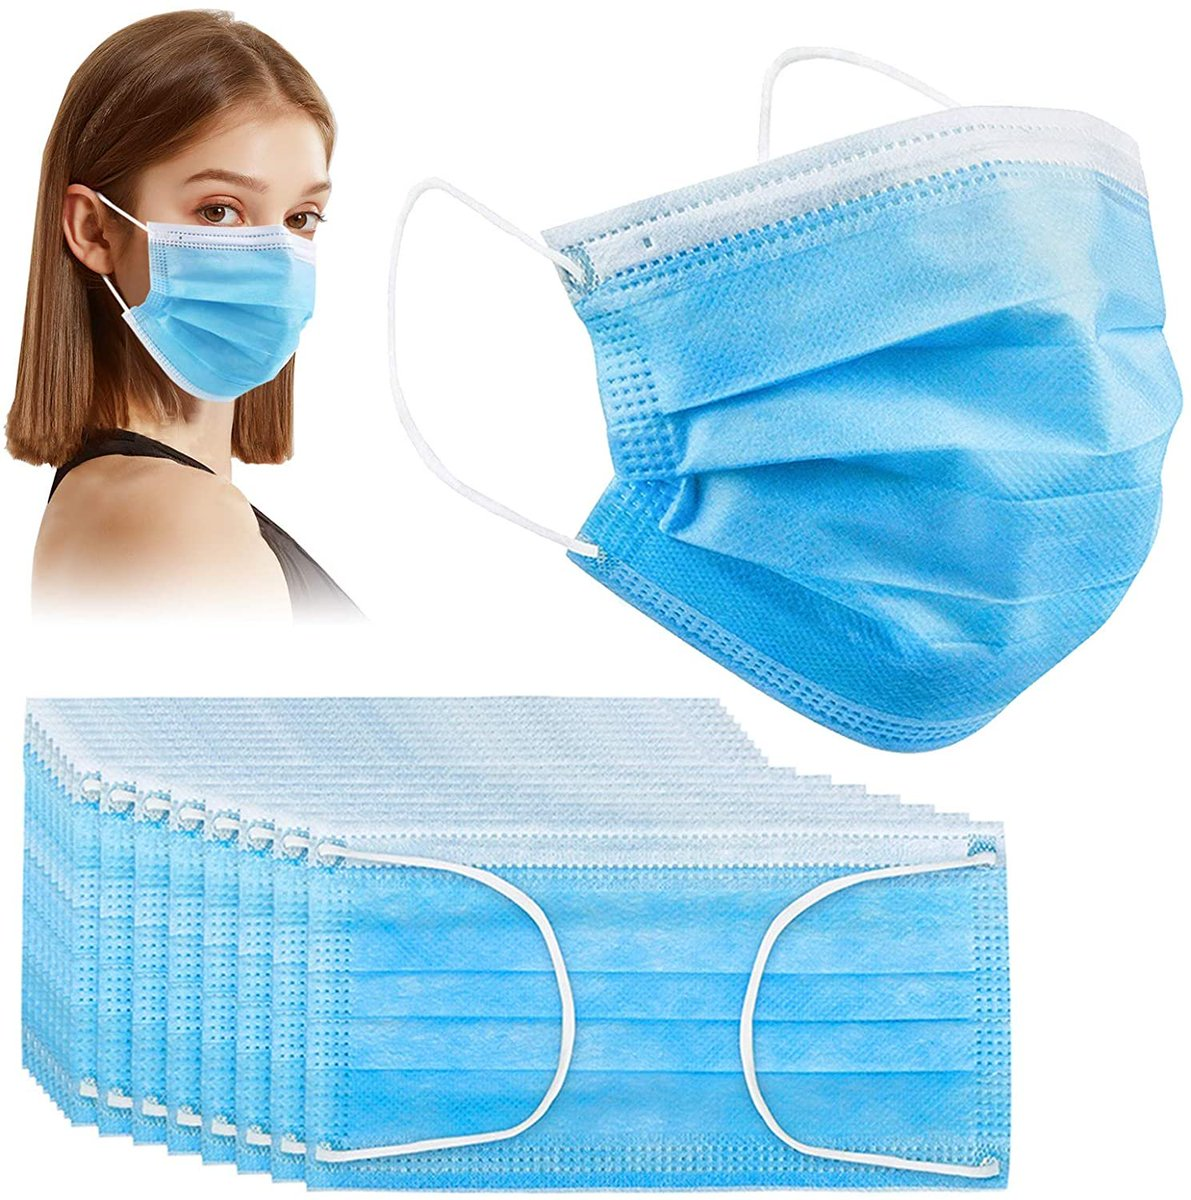 50 Pcs Disposable Face Masks, Acewin 3-Ply Face Mask  Only $5.49!!  Use Promo Code 50ZP9R3Z  2